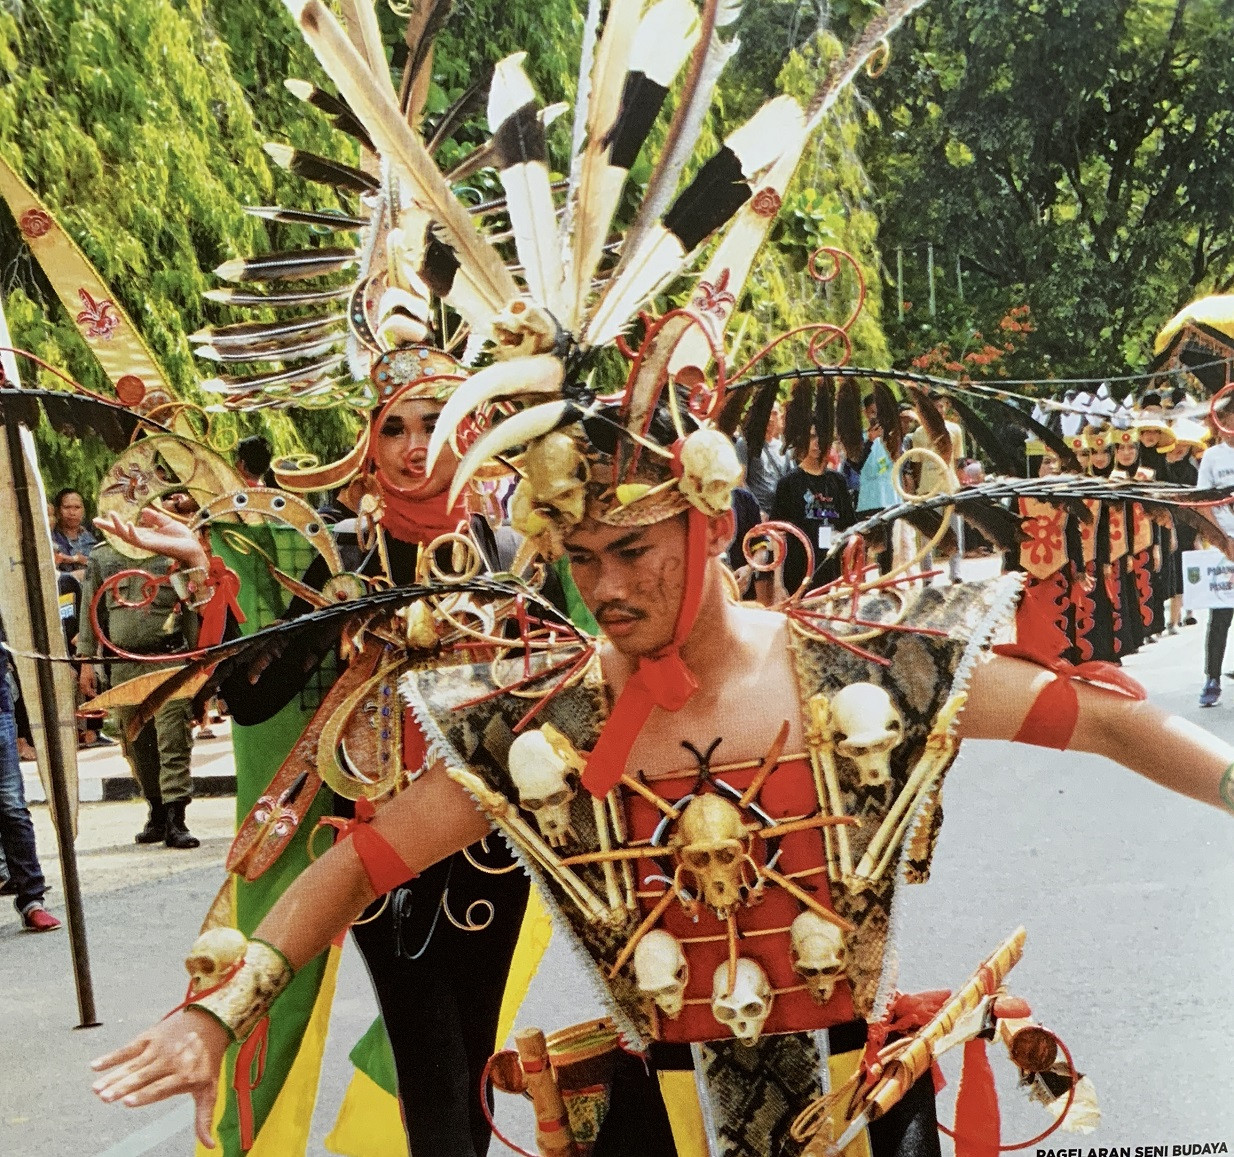 Indonesia's regents and mayors of culture